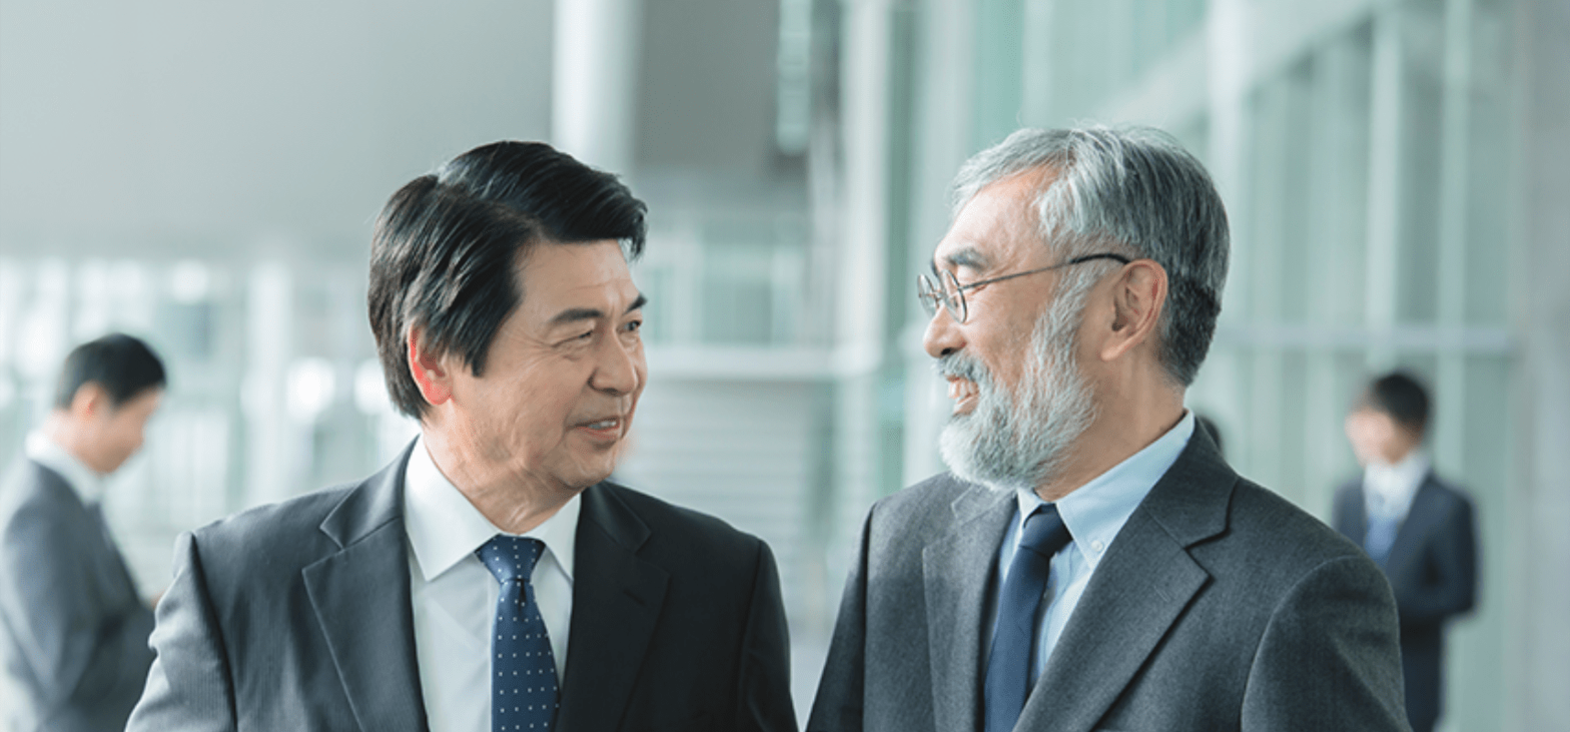 Two Japanese businessmen smiling while standing